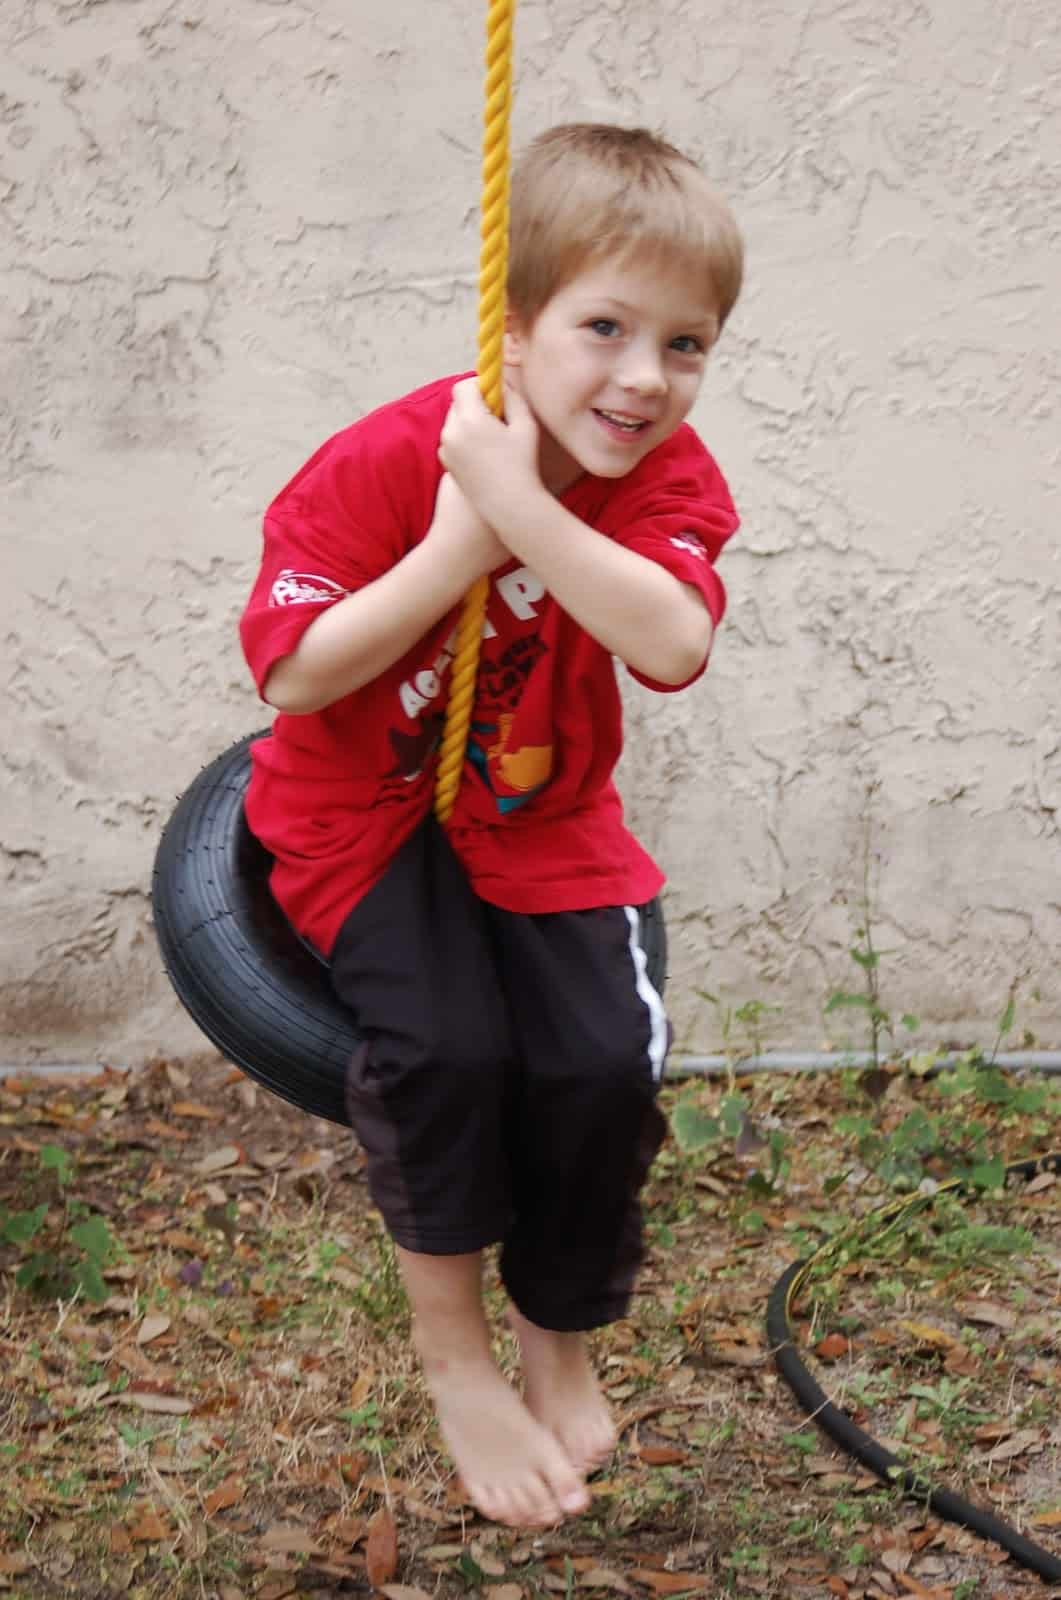 Small kids' tire seat swing